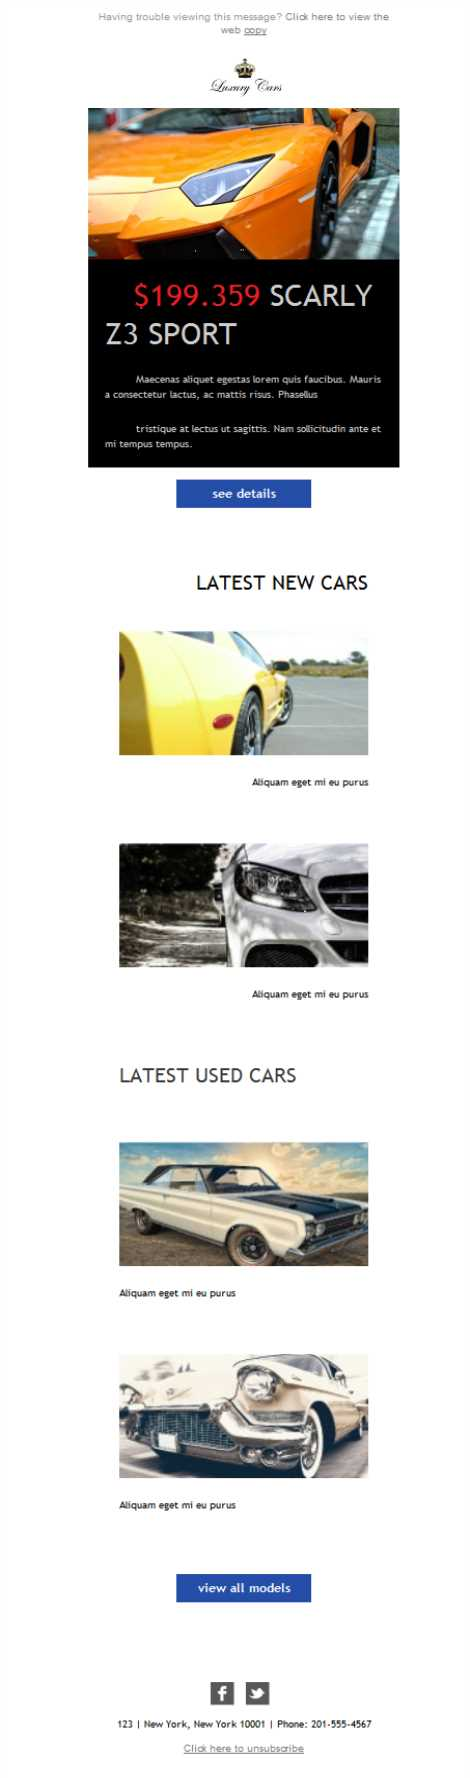 email templates for car sales